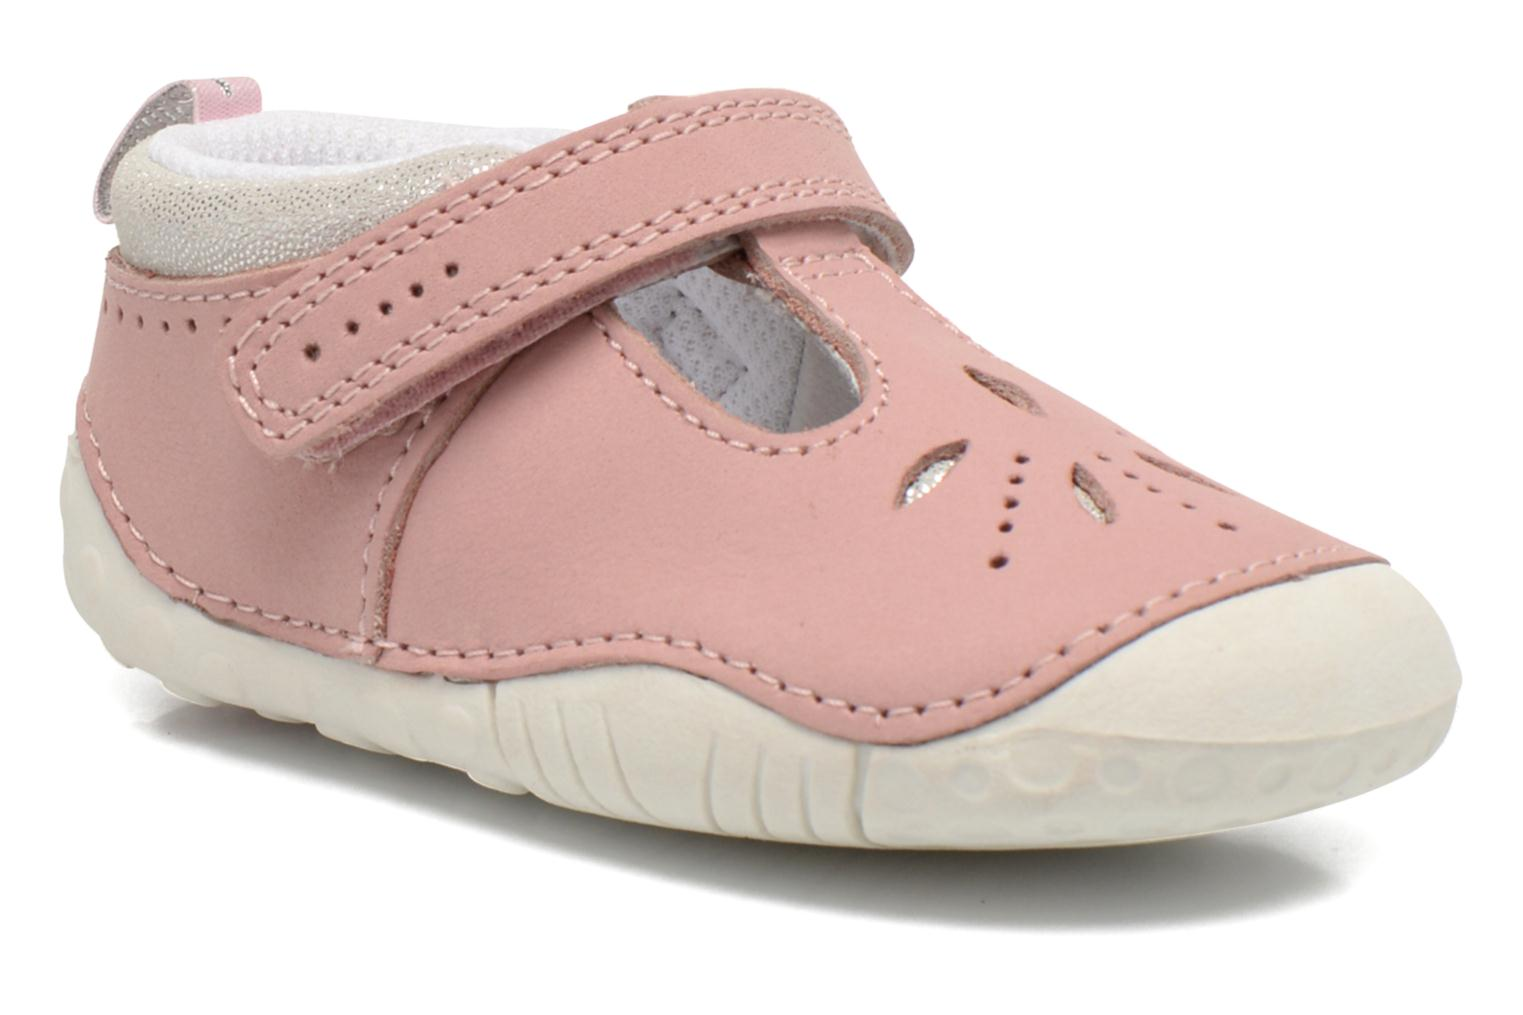 Chaussons Start Rite Polly Rose vue détail/paire